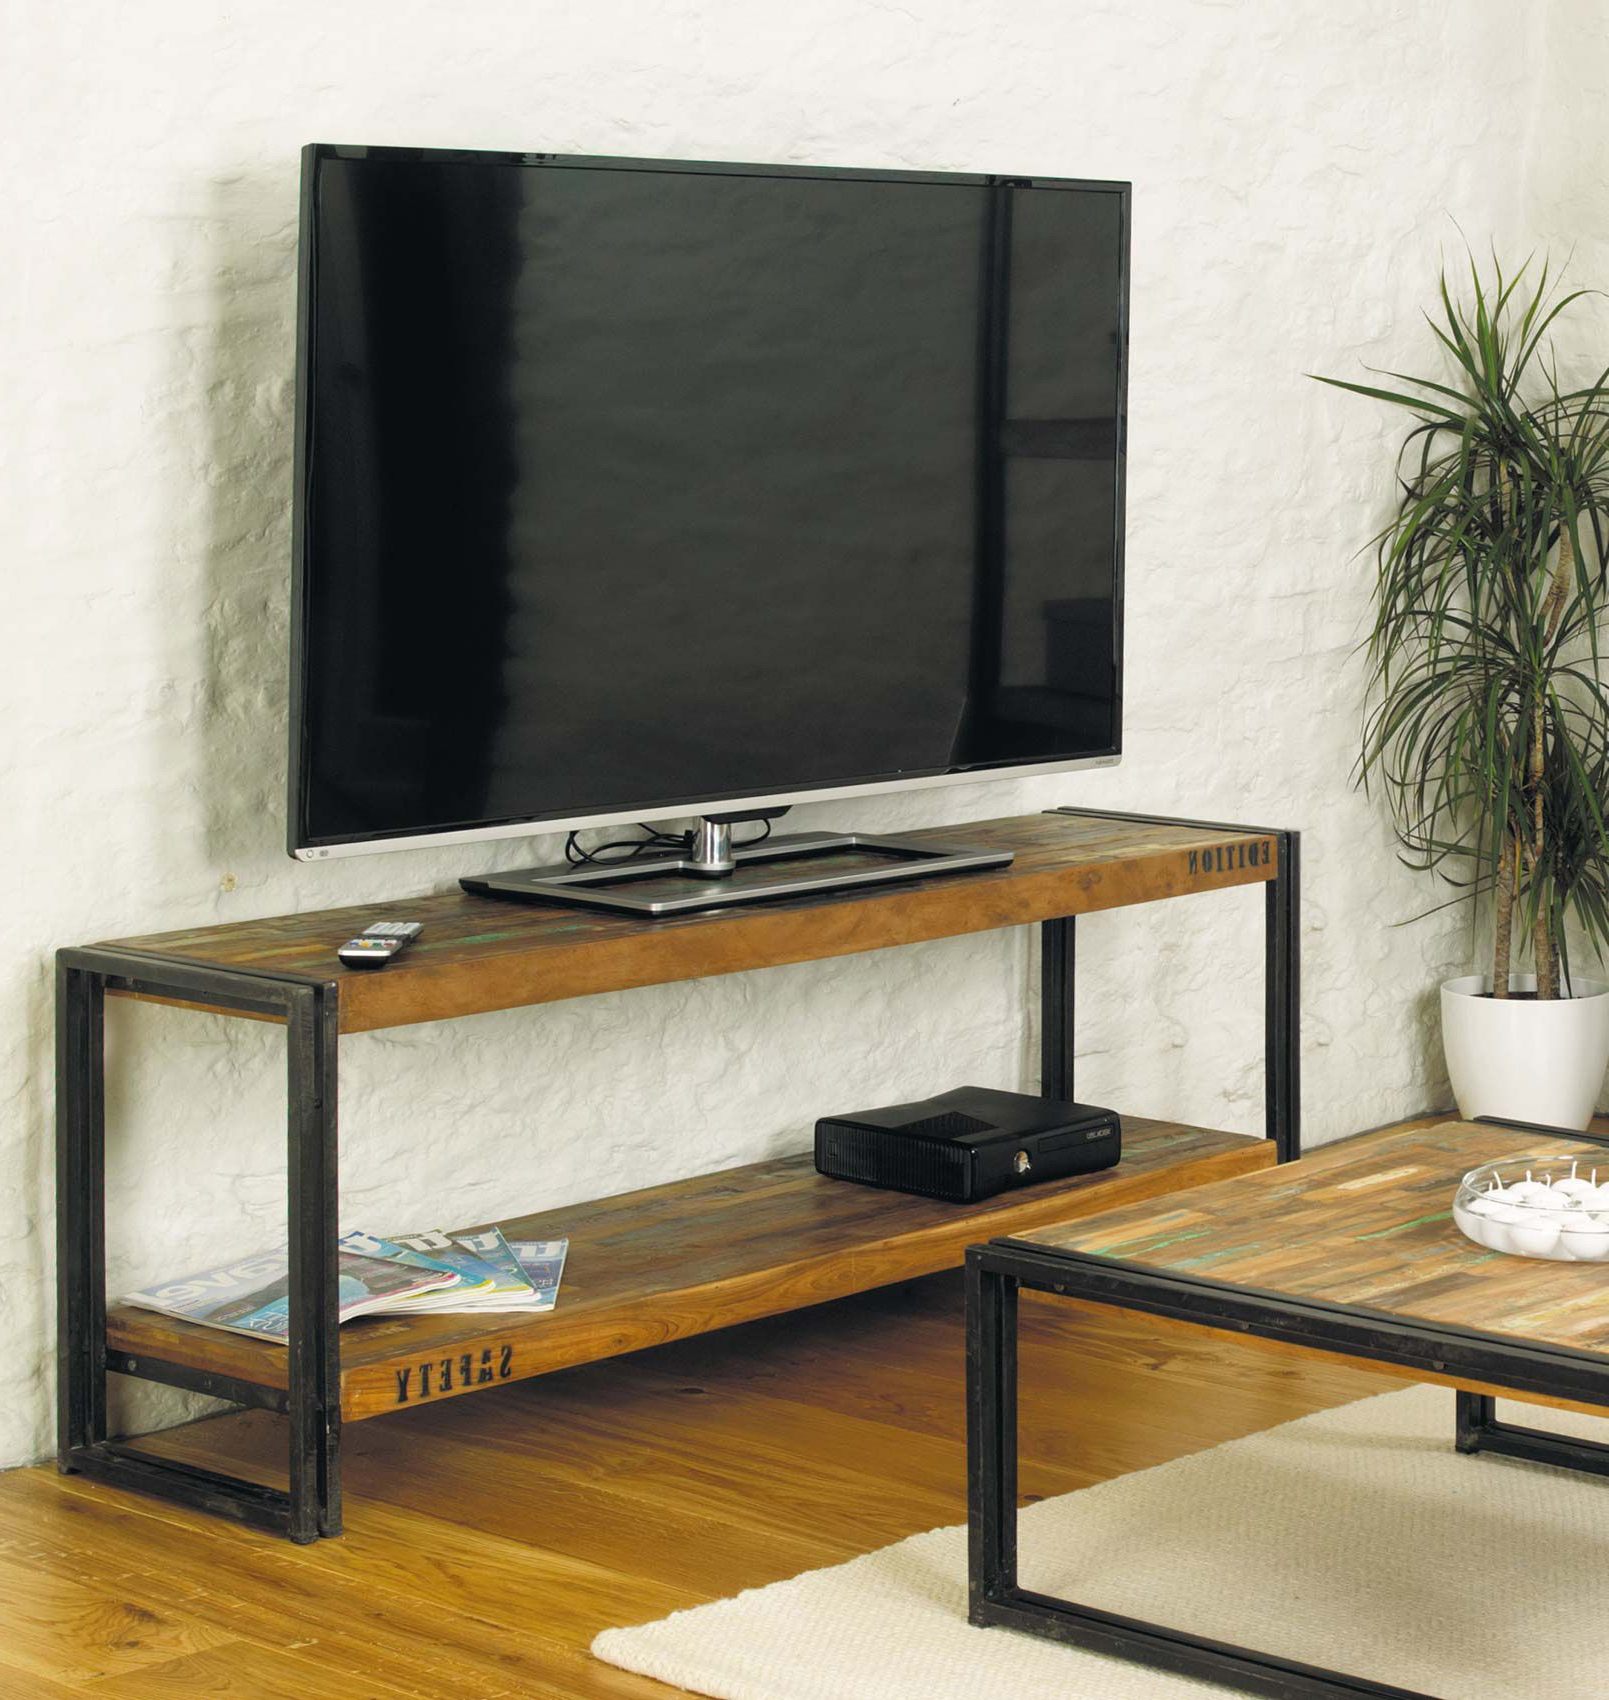 Tv Console In Industrial Tv Cabinets (View 4 of 20)